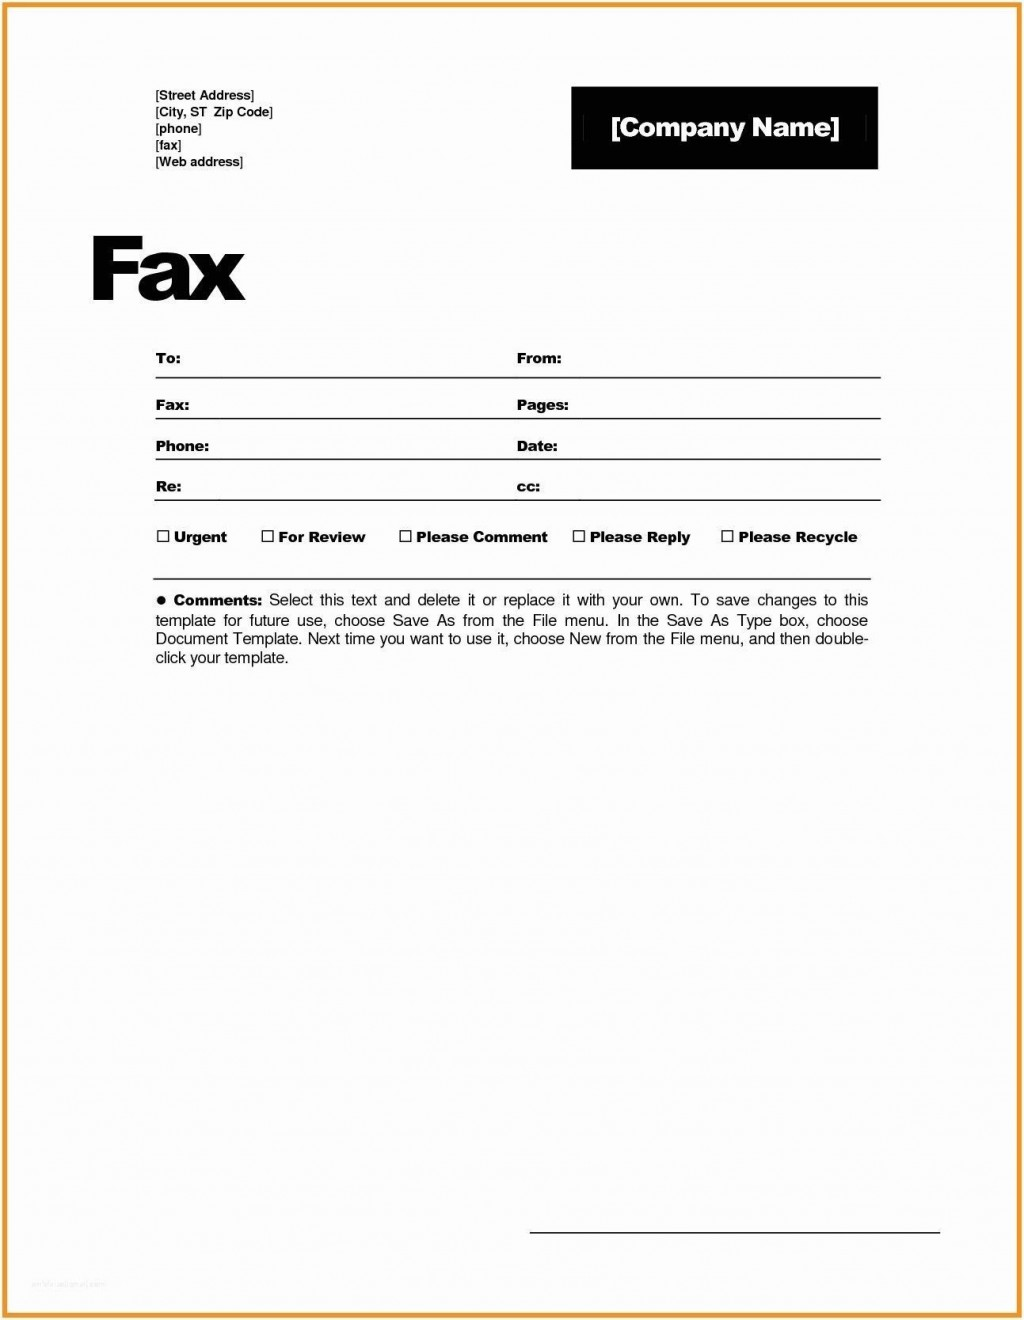 001 Magnificent General Fax Cover Letter Template Photo  Sheet Word Confidential ExampleLarge